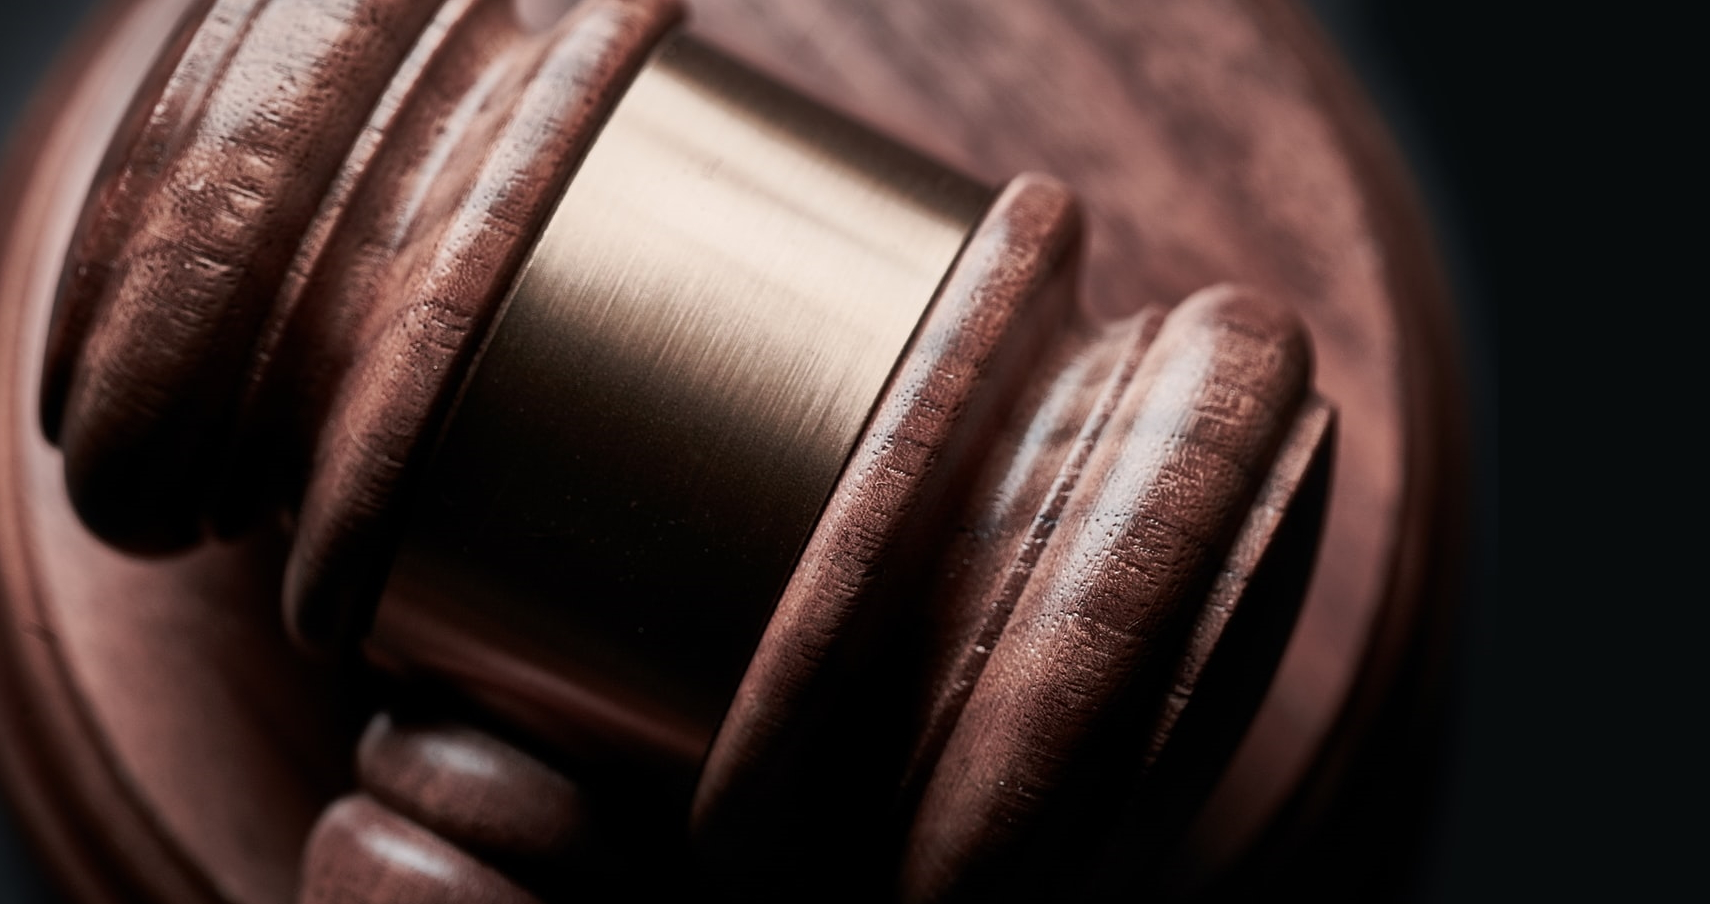 Patent Docs: What is required for an ANDA applicant to induce infringement?